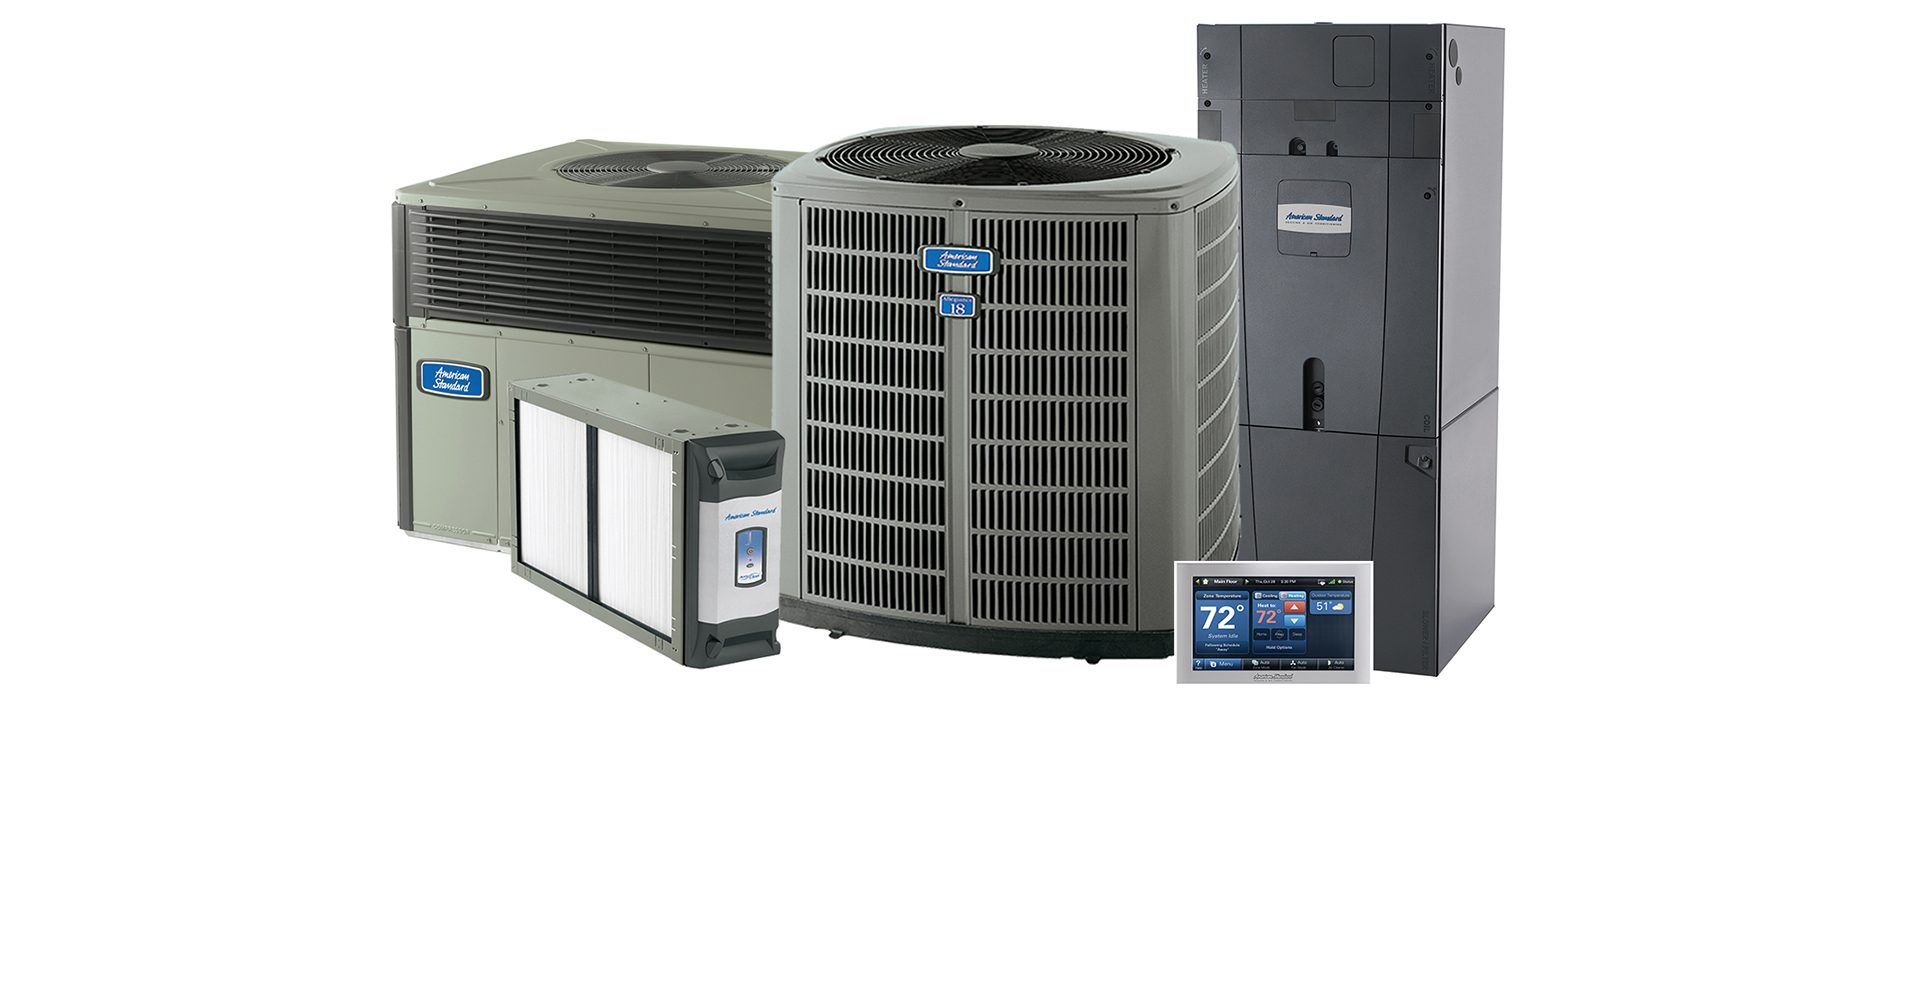 American Standard brand of air conditioning equipment dealer, HVAC Equipment family photo